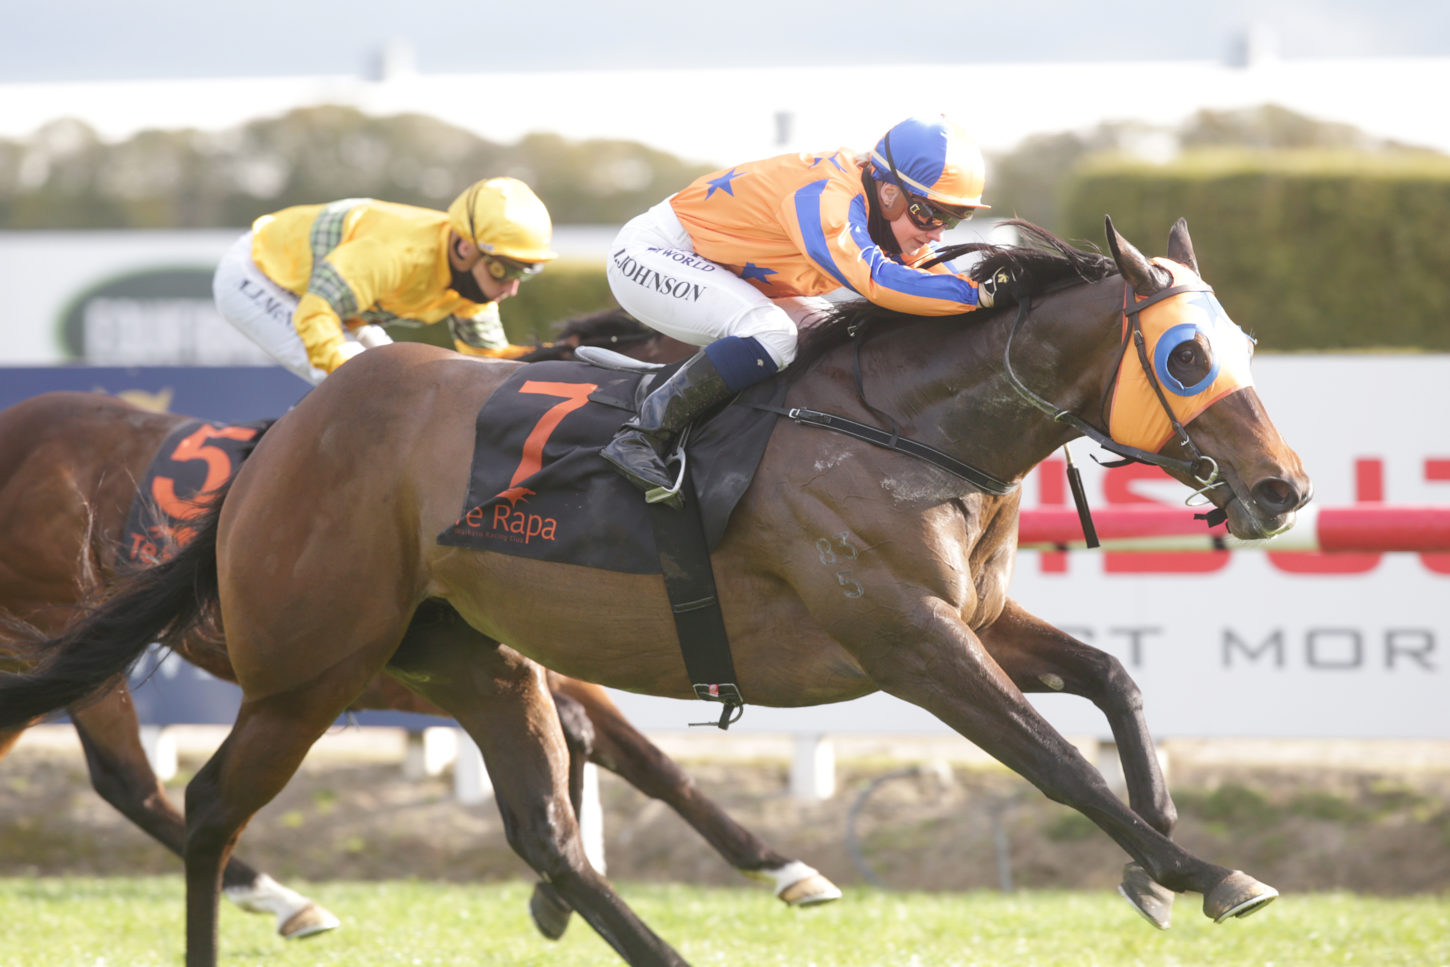 Richards Whets His Appetite For What's Ahead